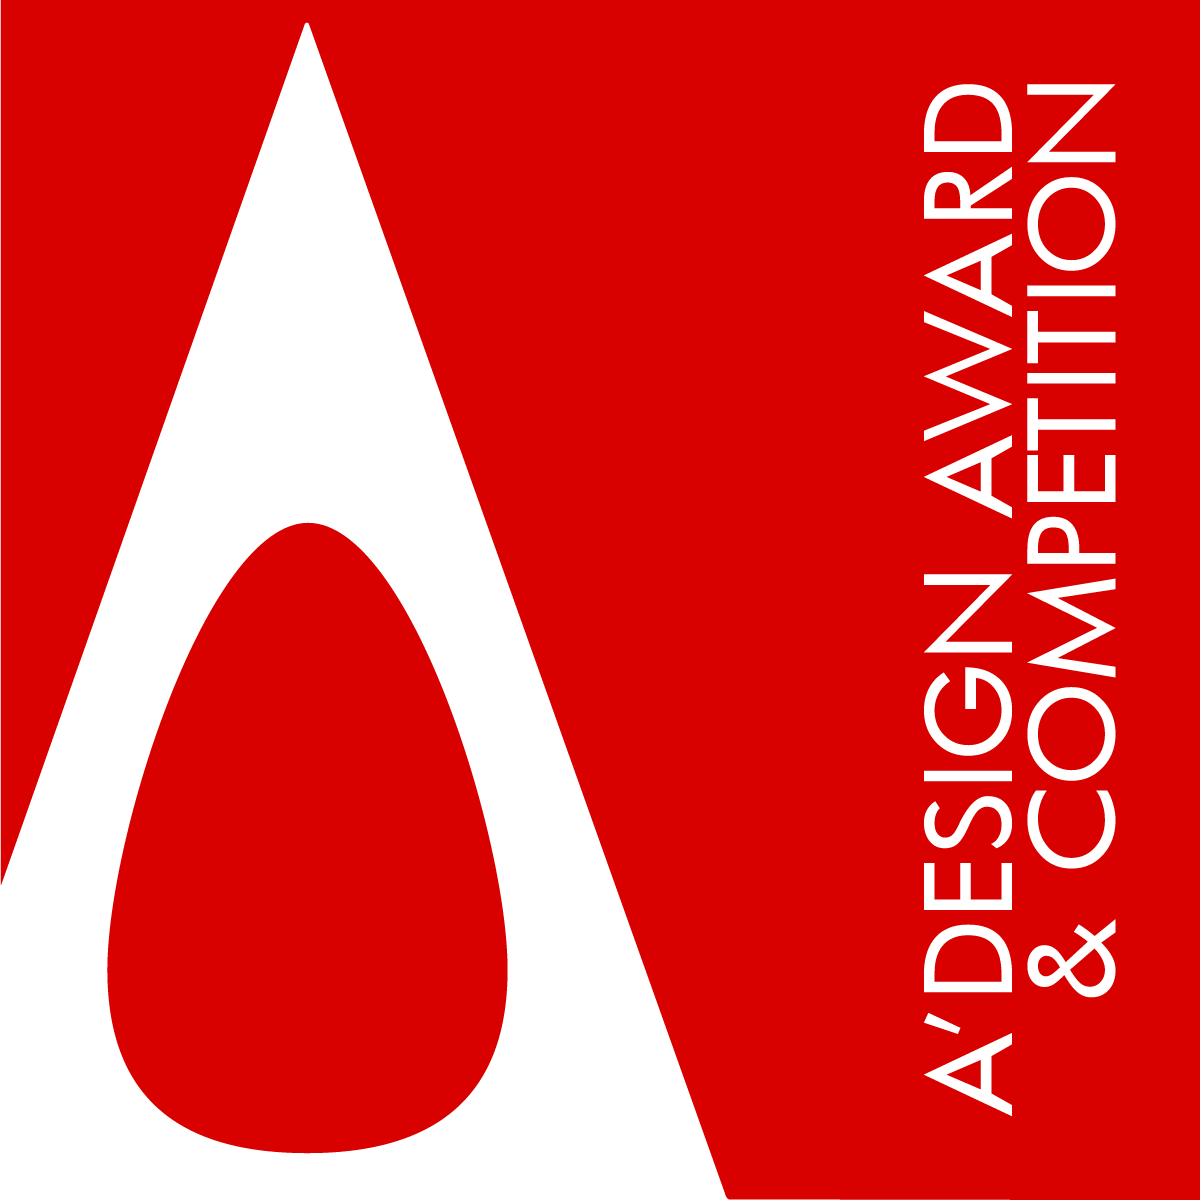 a-design-award-logo.png